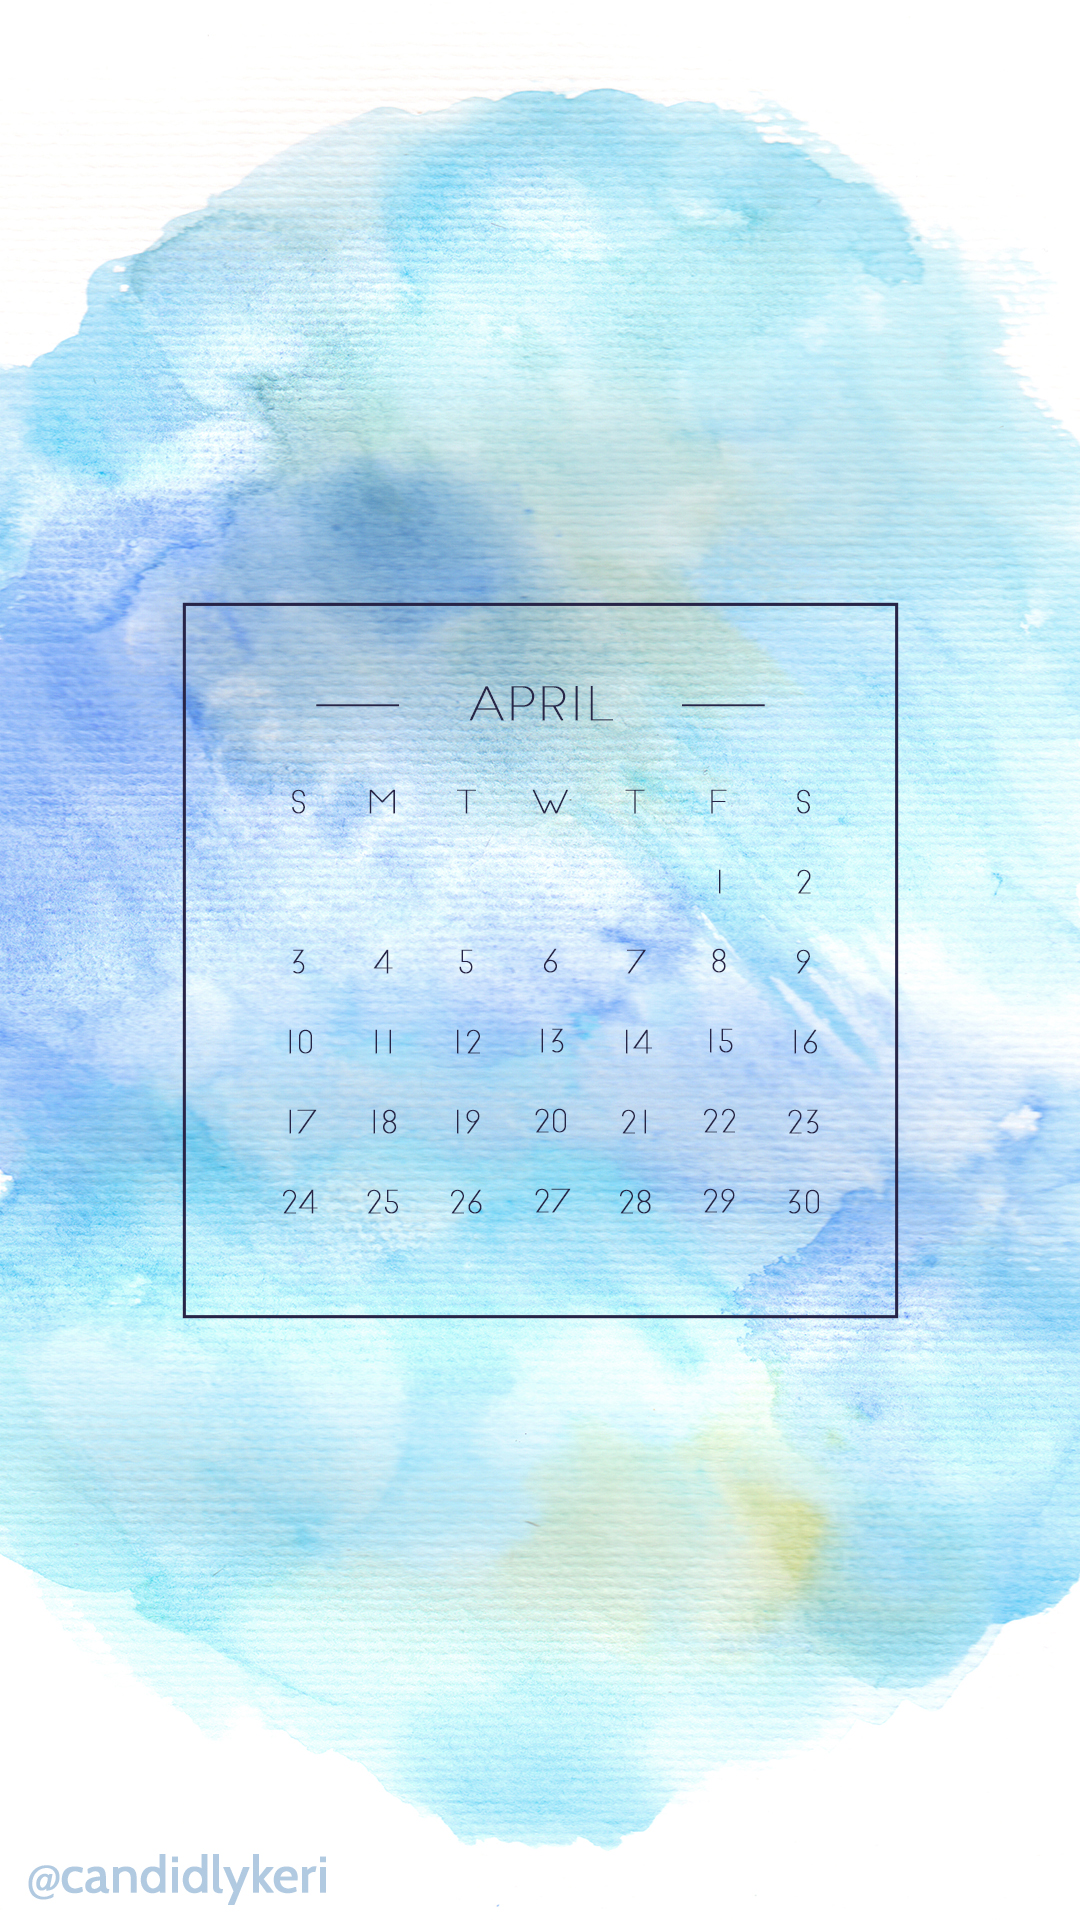 Blue-Purple-and-Yellow-watercolor-background-April-calendar-download-for-free-backgro-wallpaper-wpc9003053